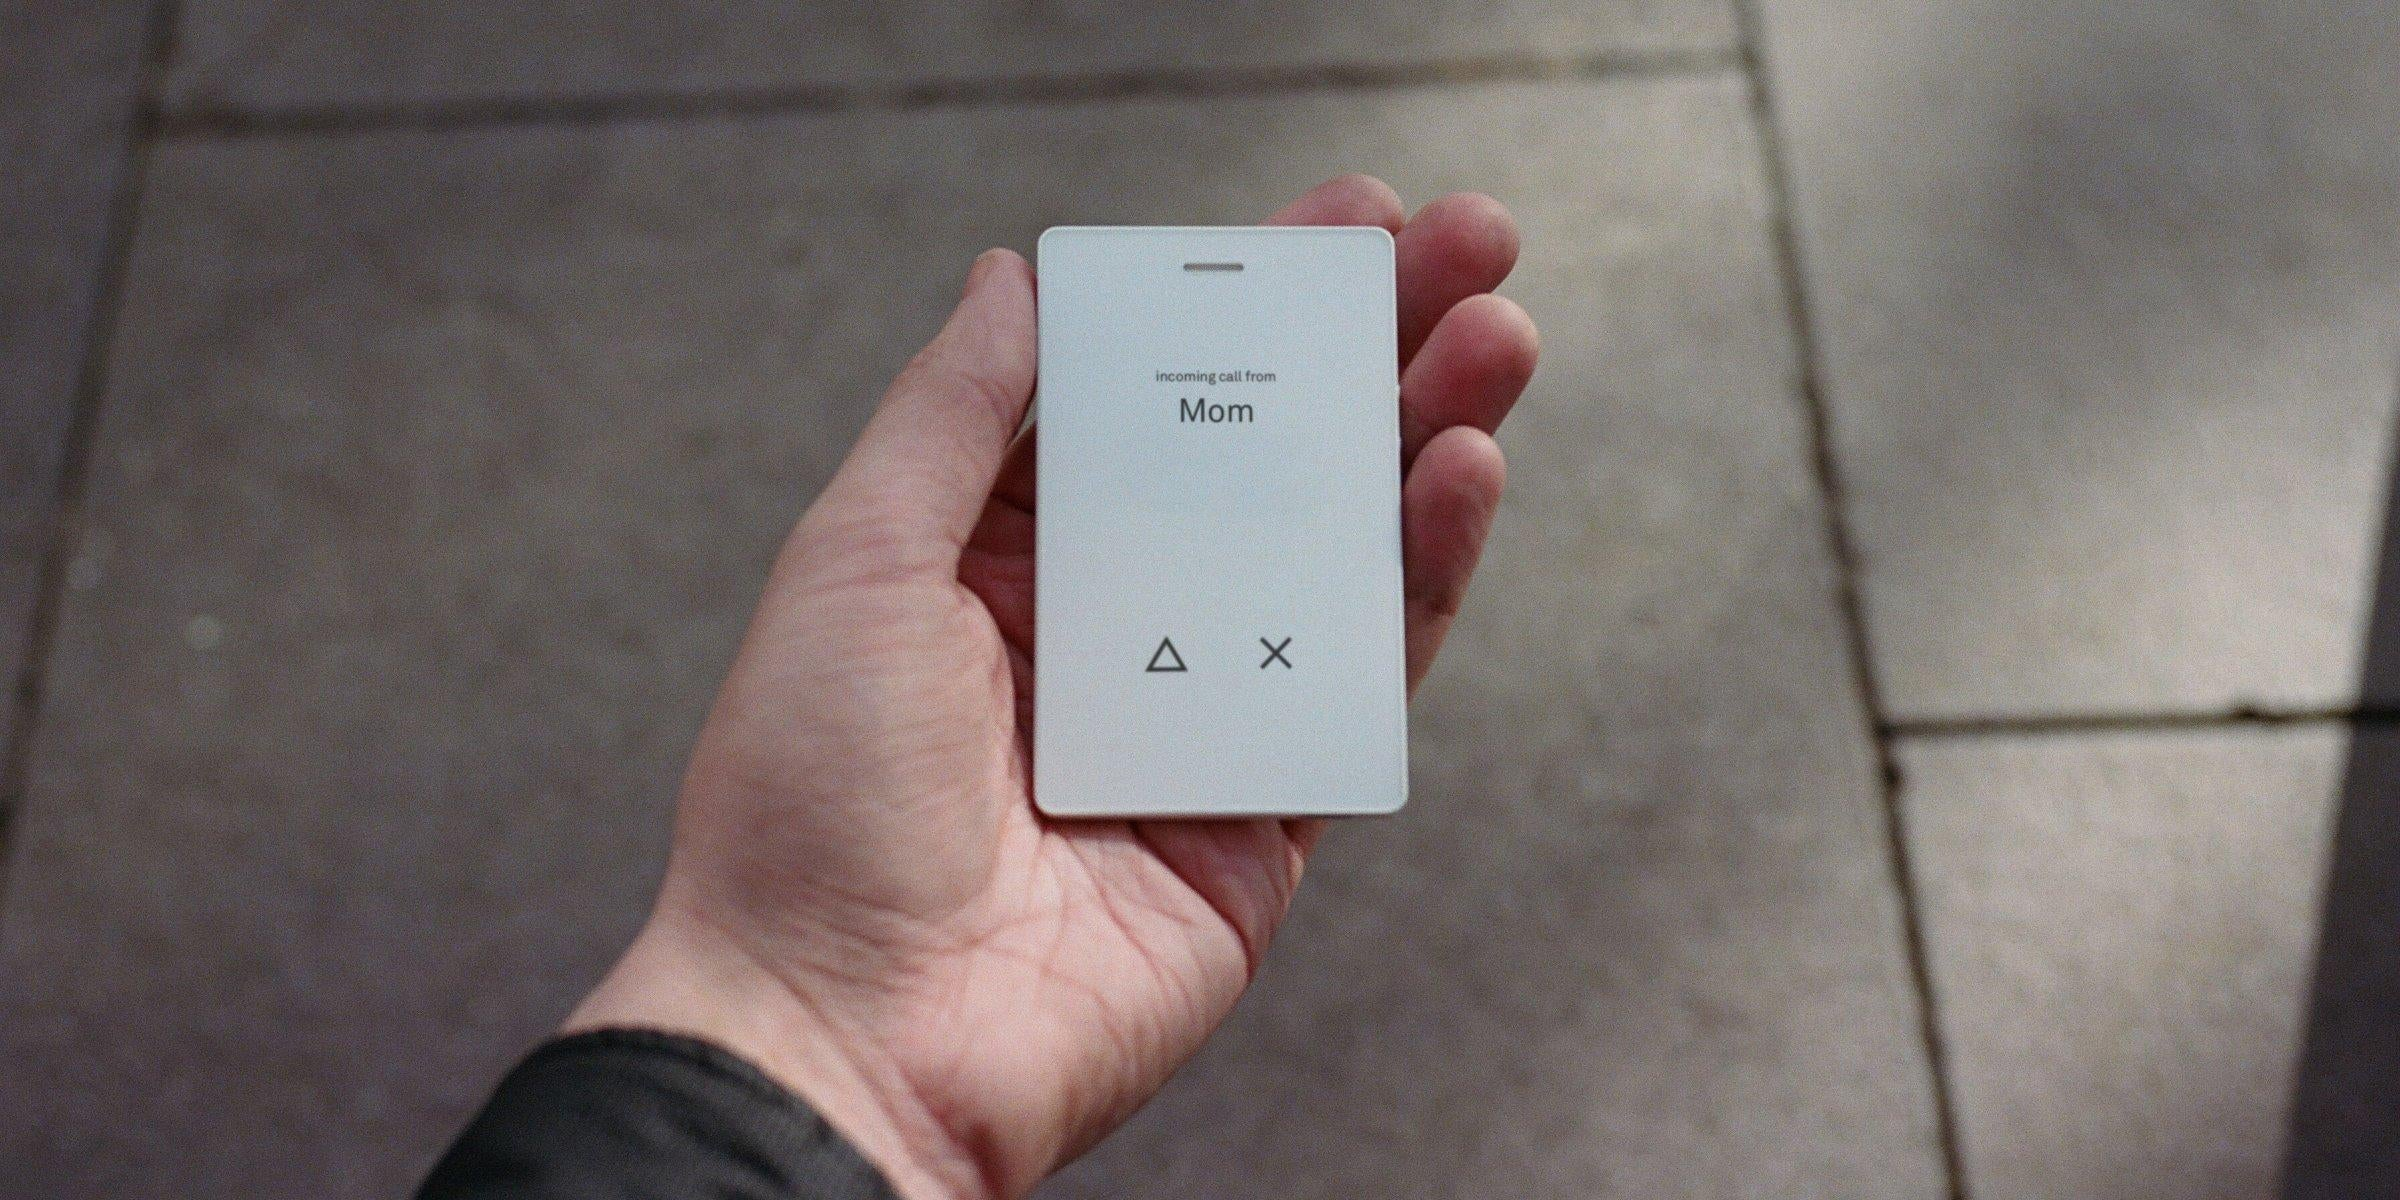 This beautifully designed 'dumb phone' might be the key to curing our addiction to apps